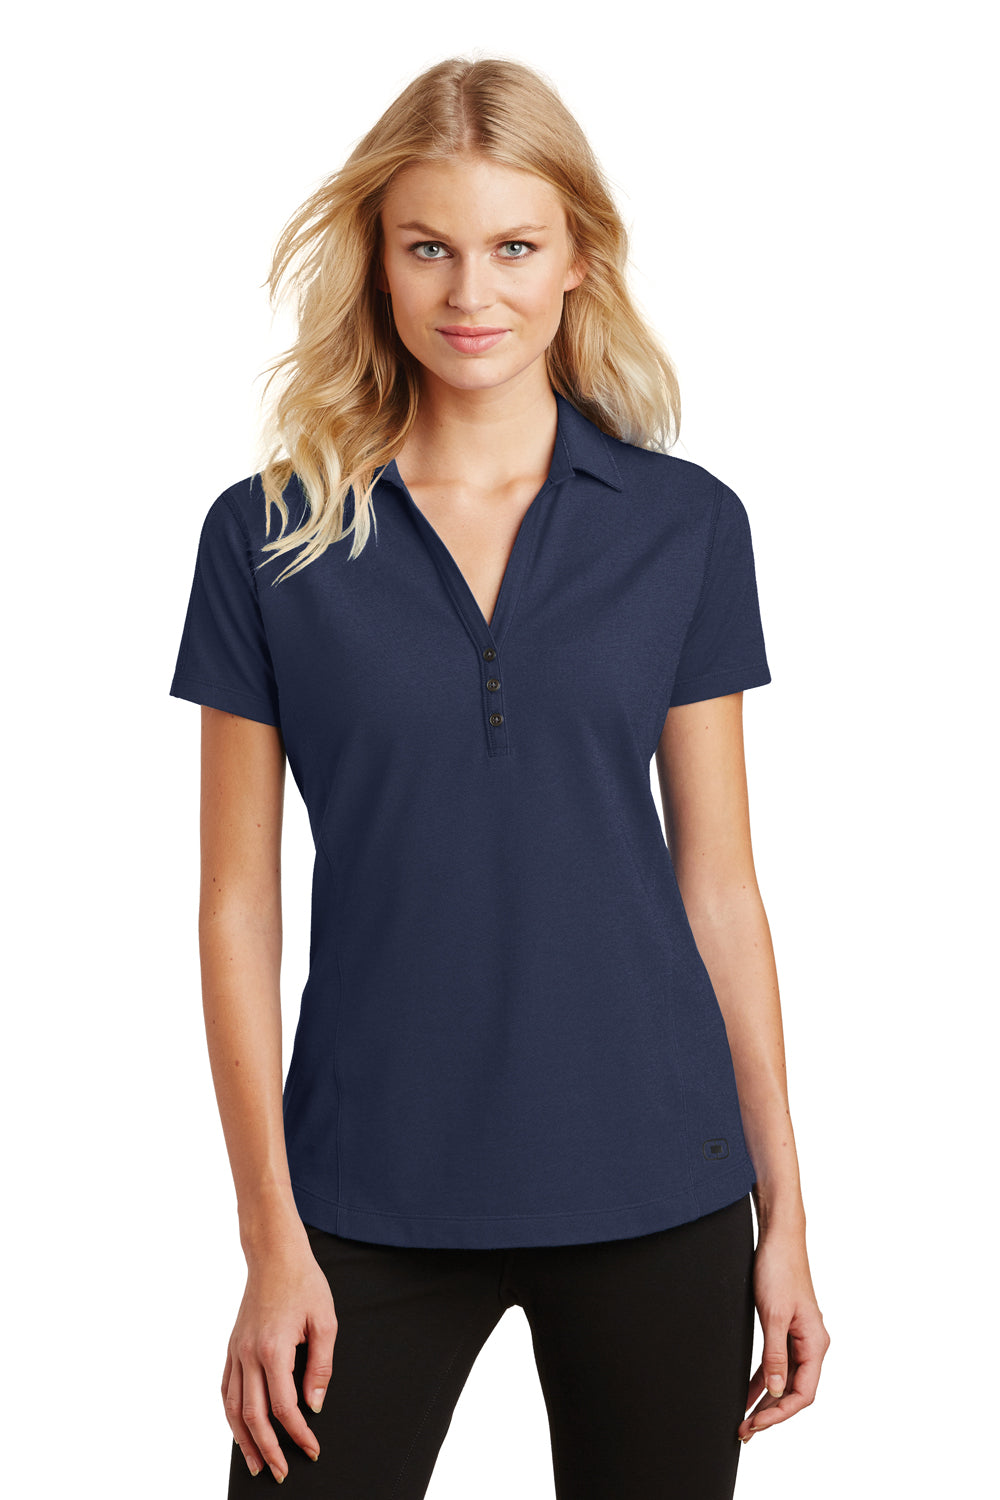 Ogio LOG126 Womens Onyx Moisture Wicking Short Sleeve Polo Shirt Navy Blue Front